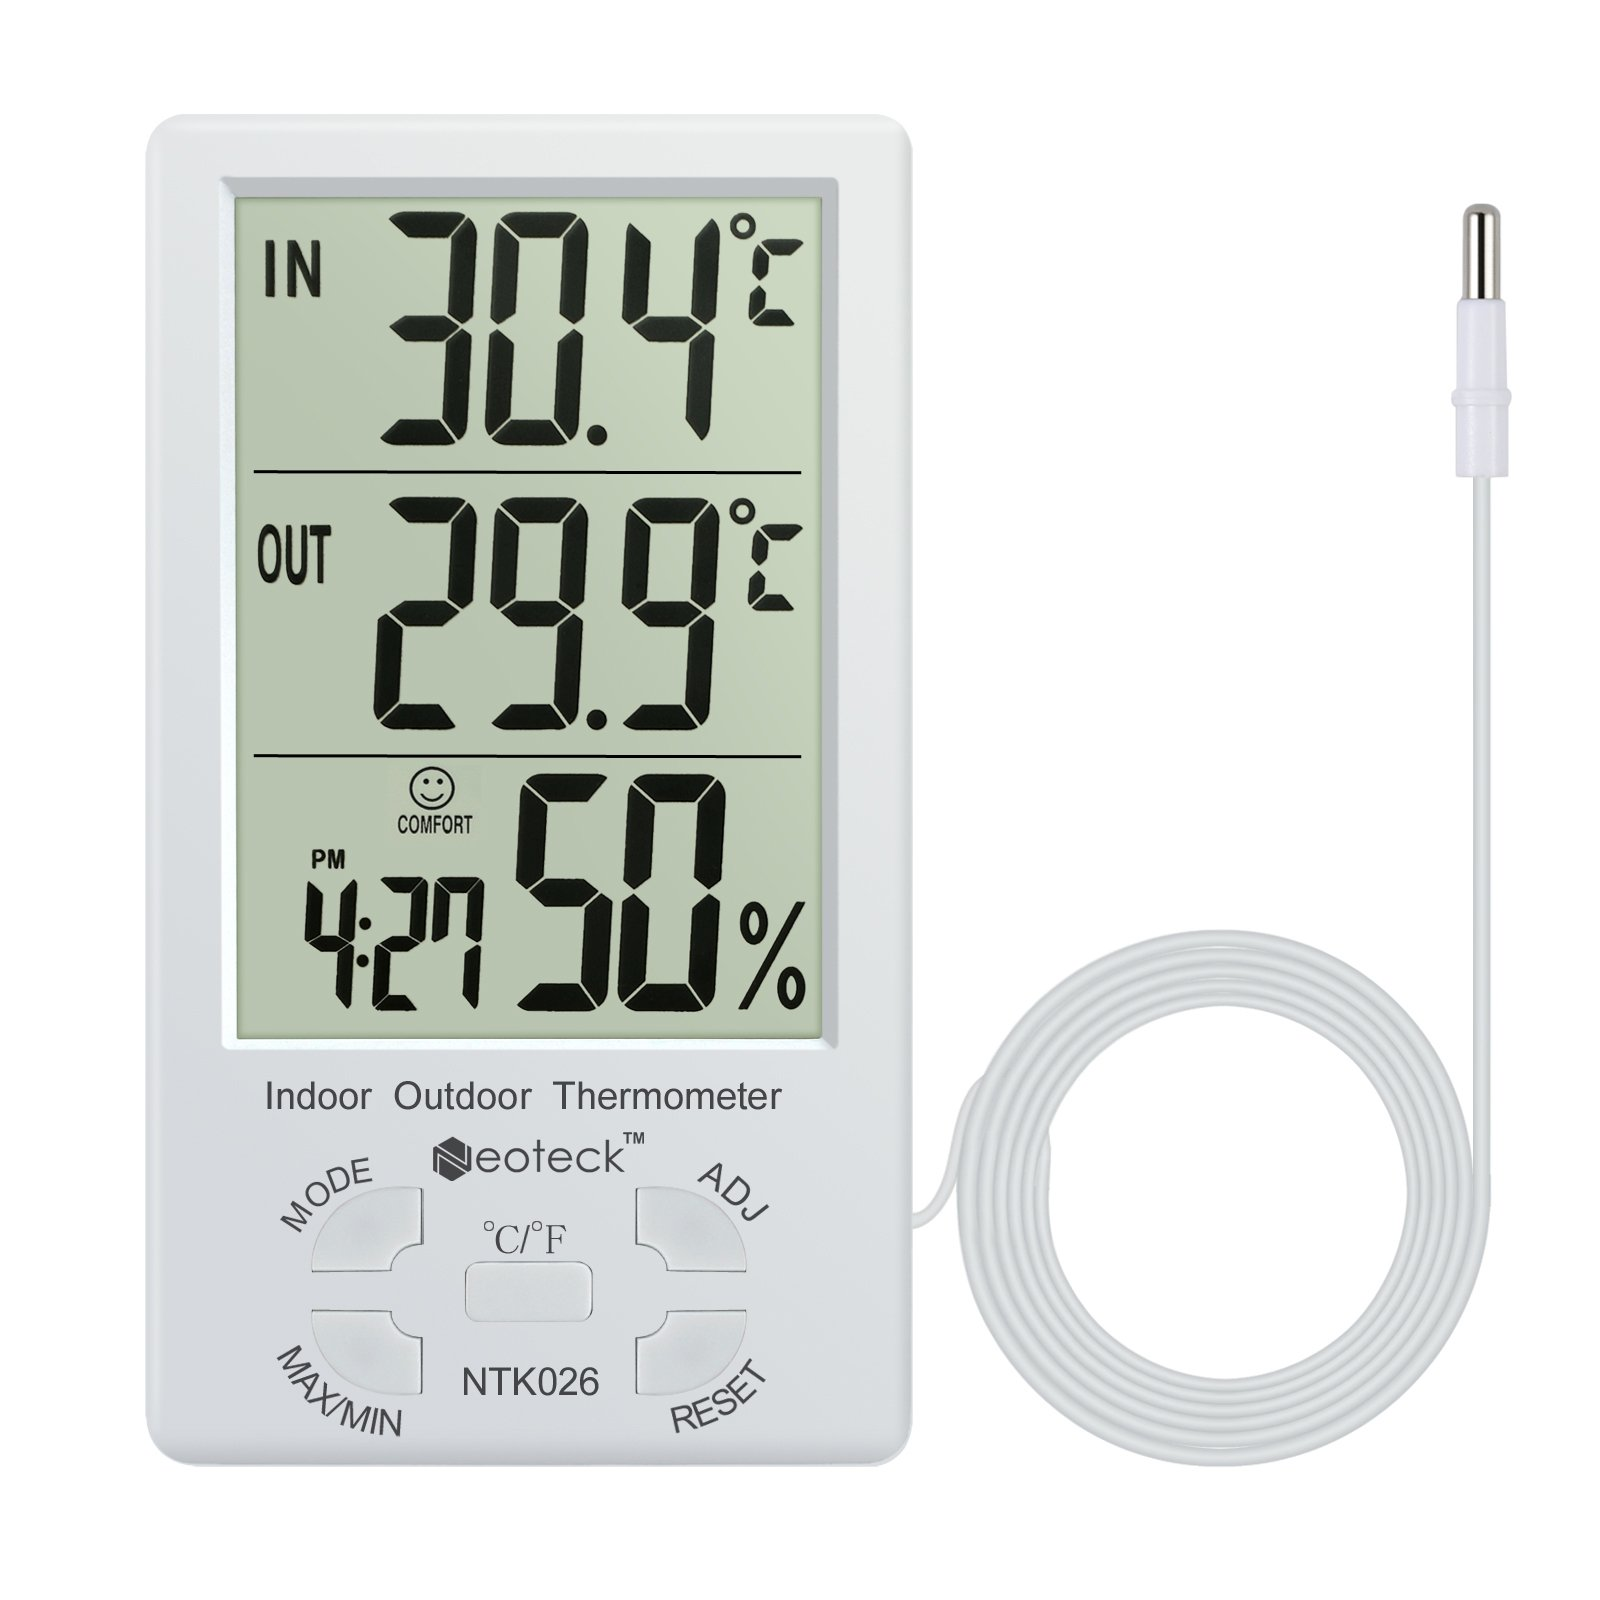 Digital Thermometer Neoteck 2 in 1 Hygrometer Temperature Meter Accuracy Temperature & Humidity with Large LCD Display 1.5m Sensor Wire Manage Air Condition for Indoor Outdoor Use by Neoteck